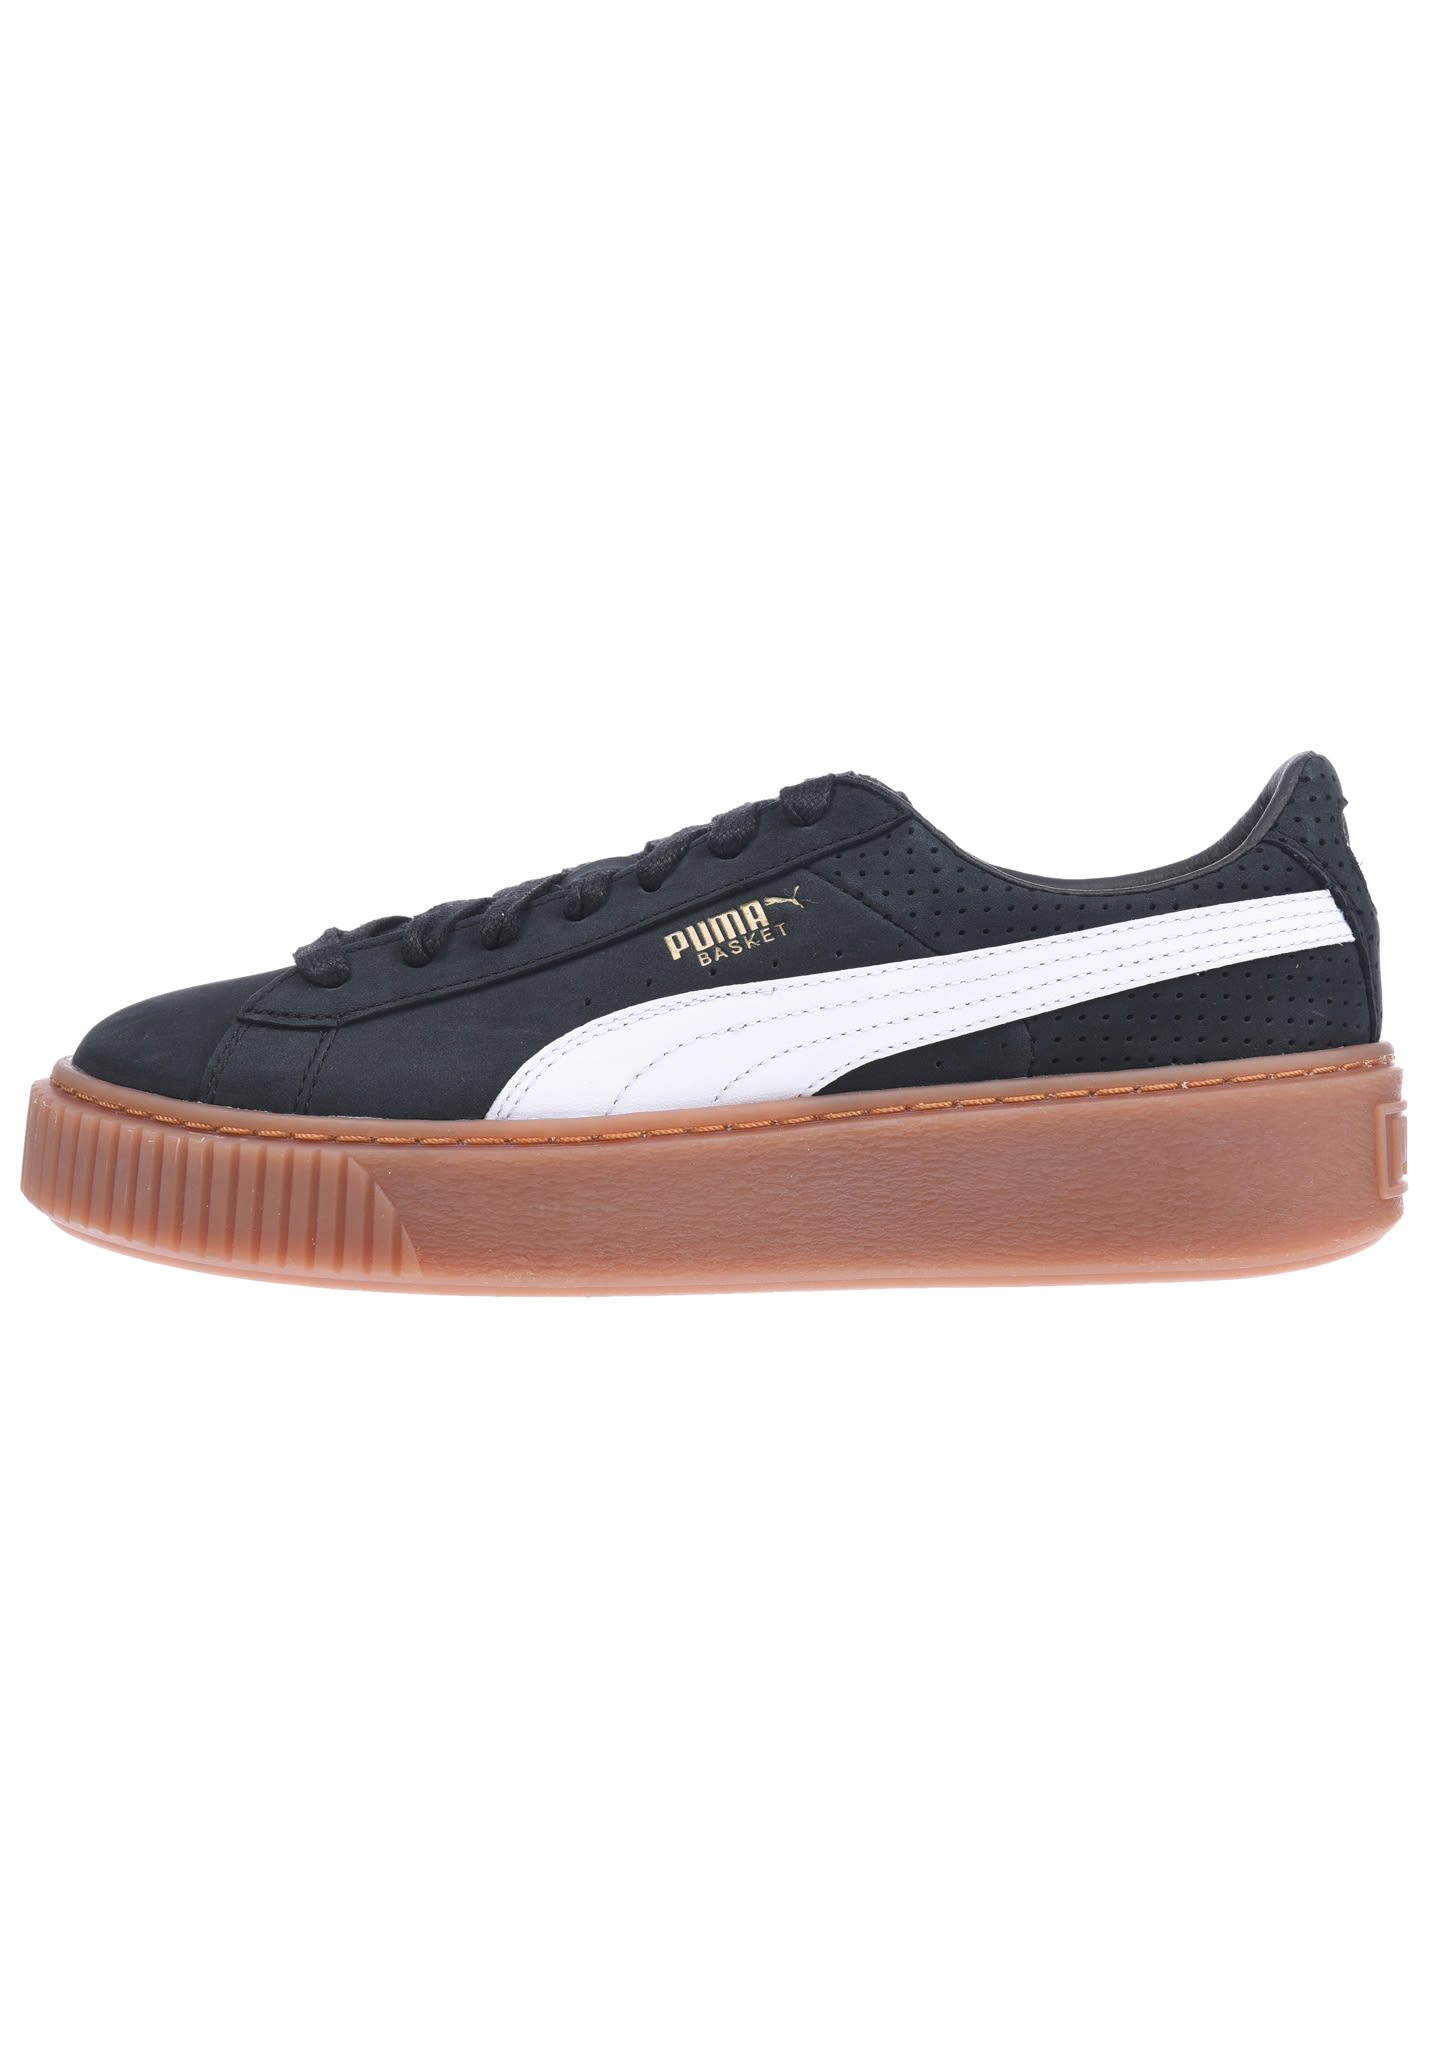 85a2167e85 Puma Basket Platform Perf Gum - Sneakers for Women - Black - Planet Sports